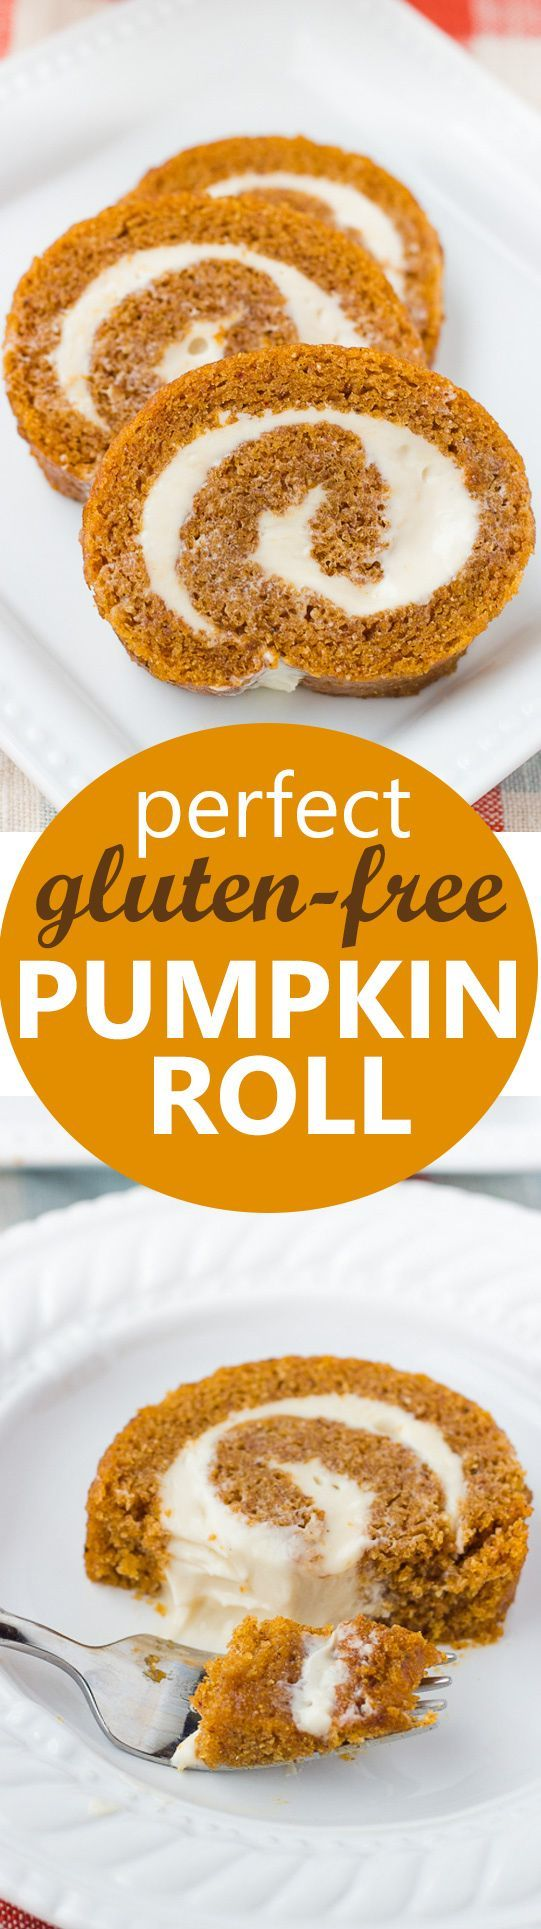 Perfect Gluten-Free Pumpkin Roll! Moist spiced cake with a cream cheese filling. Easily made dairy-free! (Butter Desserts Dairy Free)